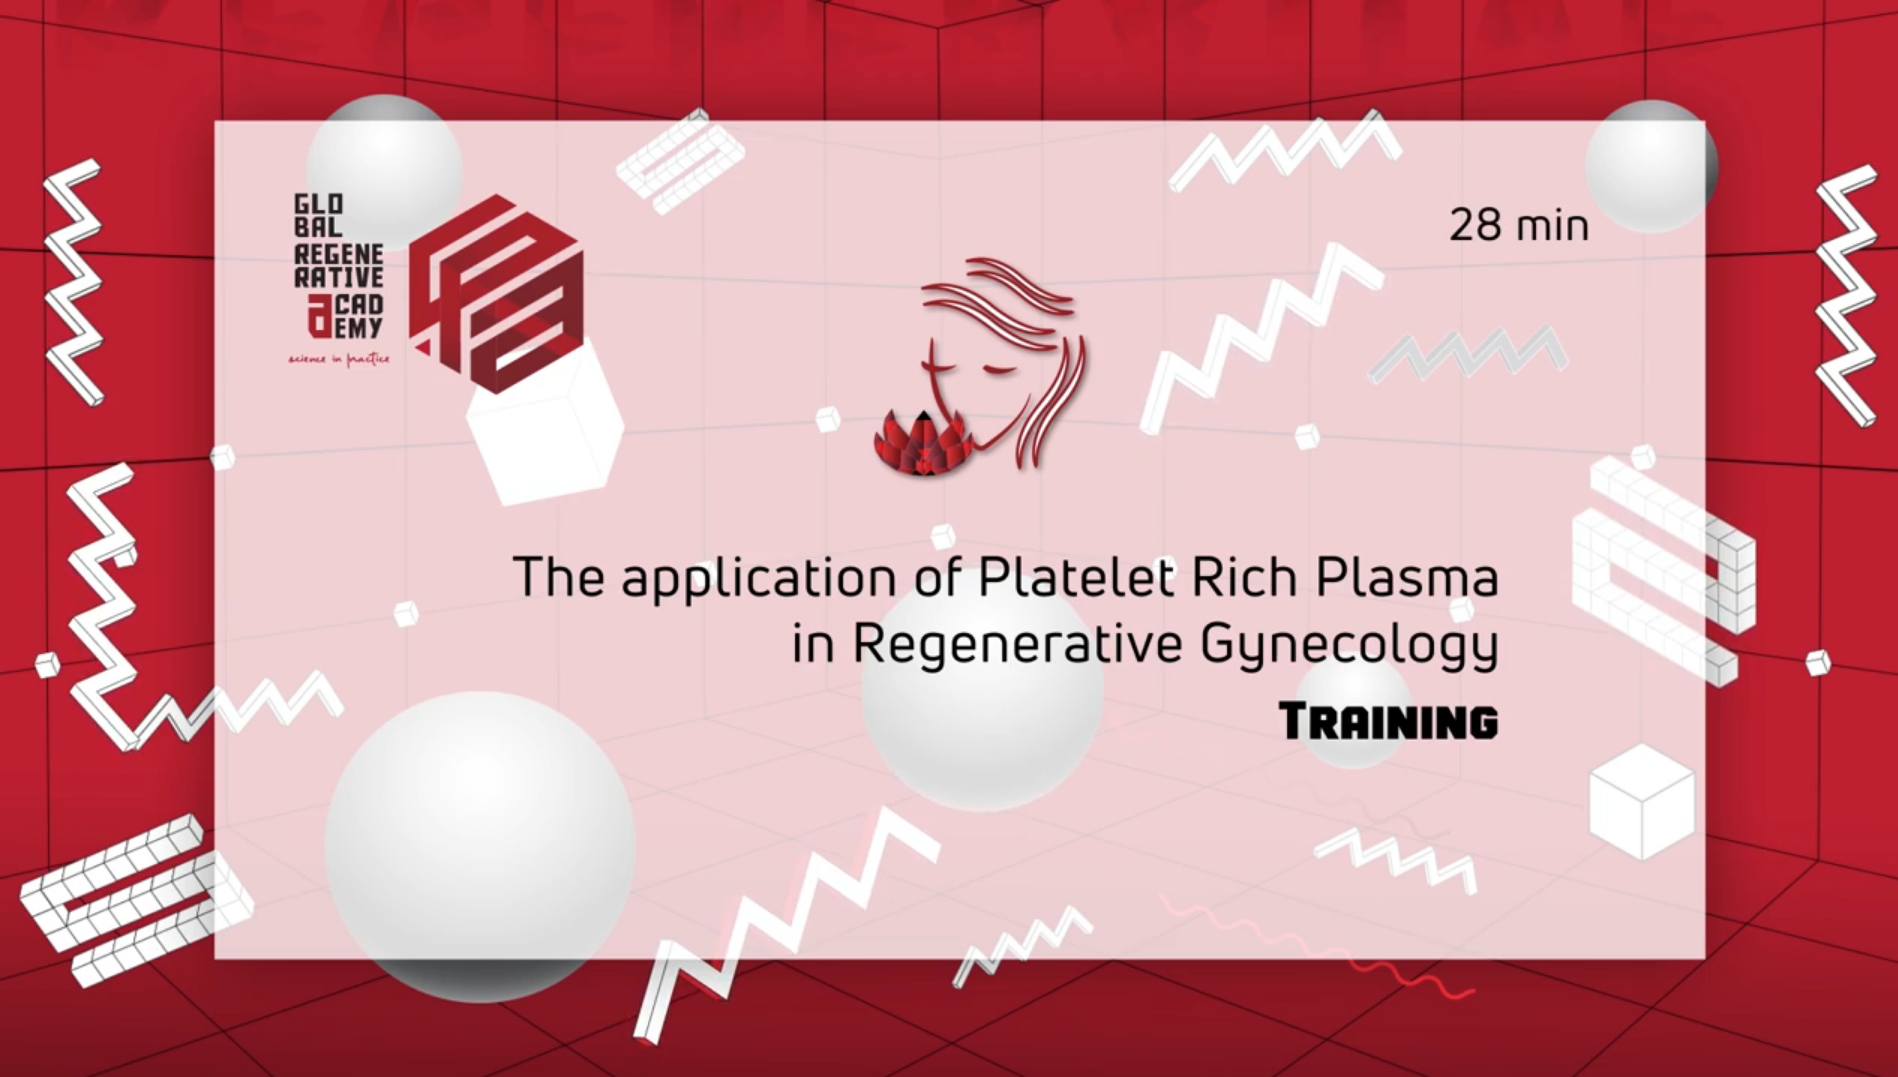 Application of Platelet Rich Plasma in Regenerative and Aesthetic Gynecology